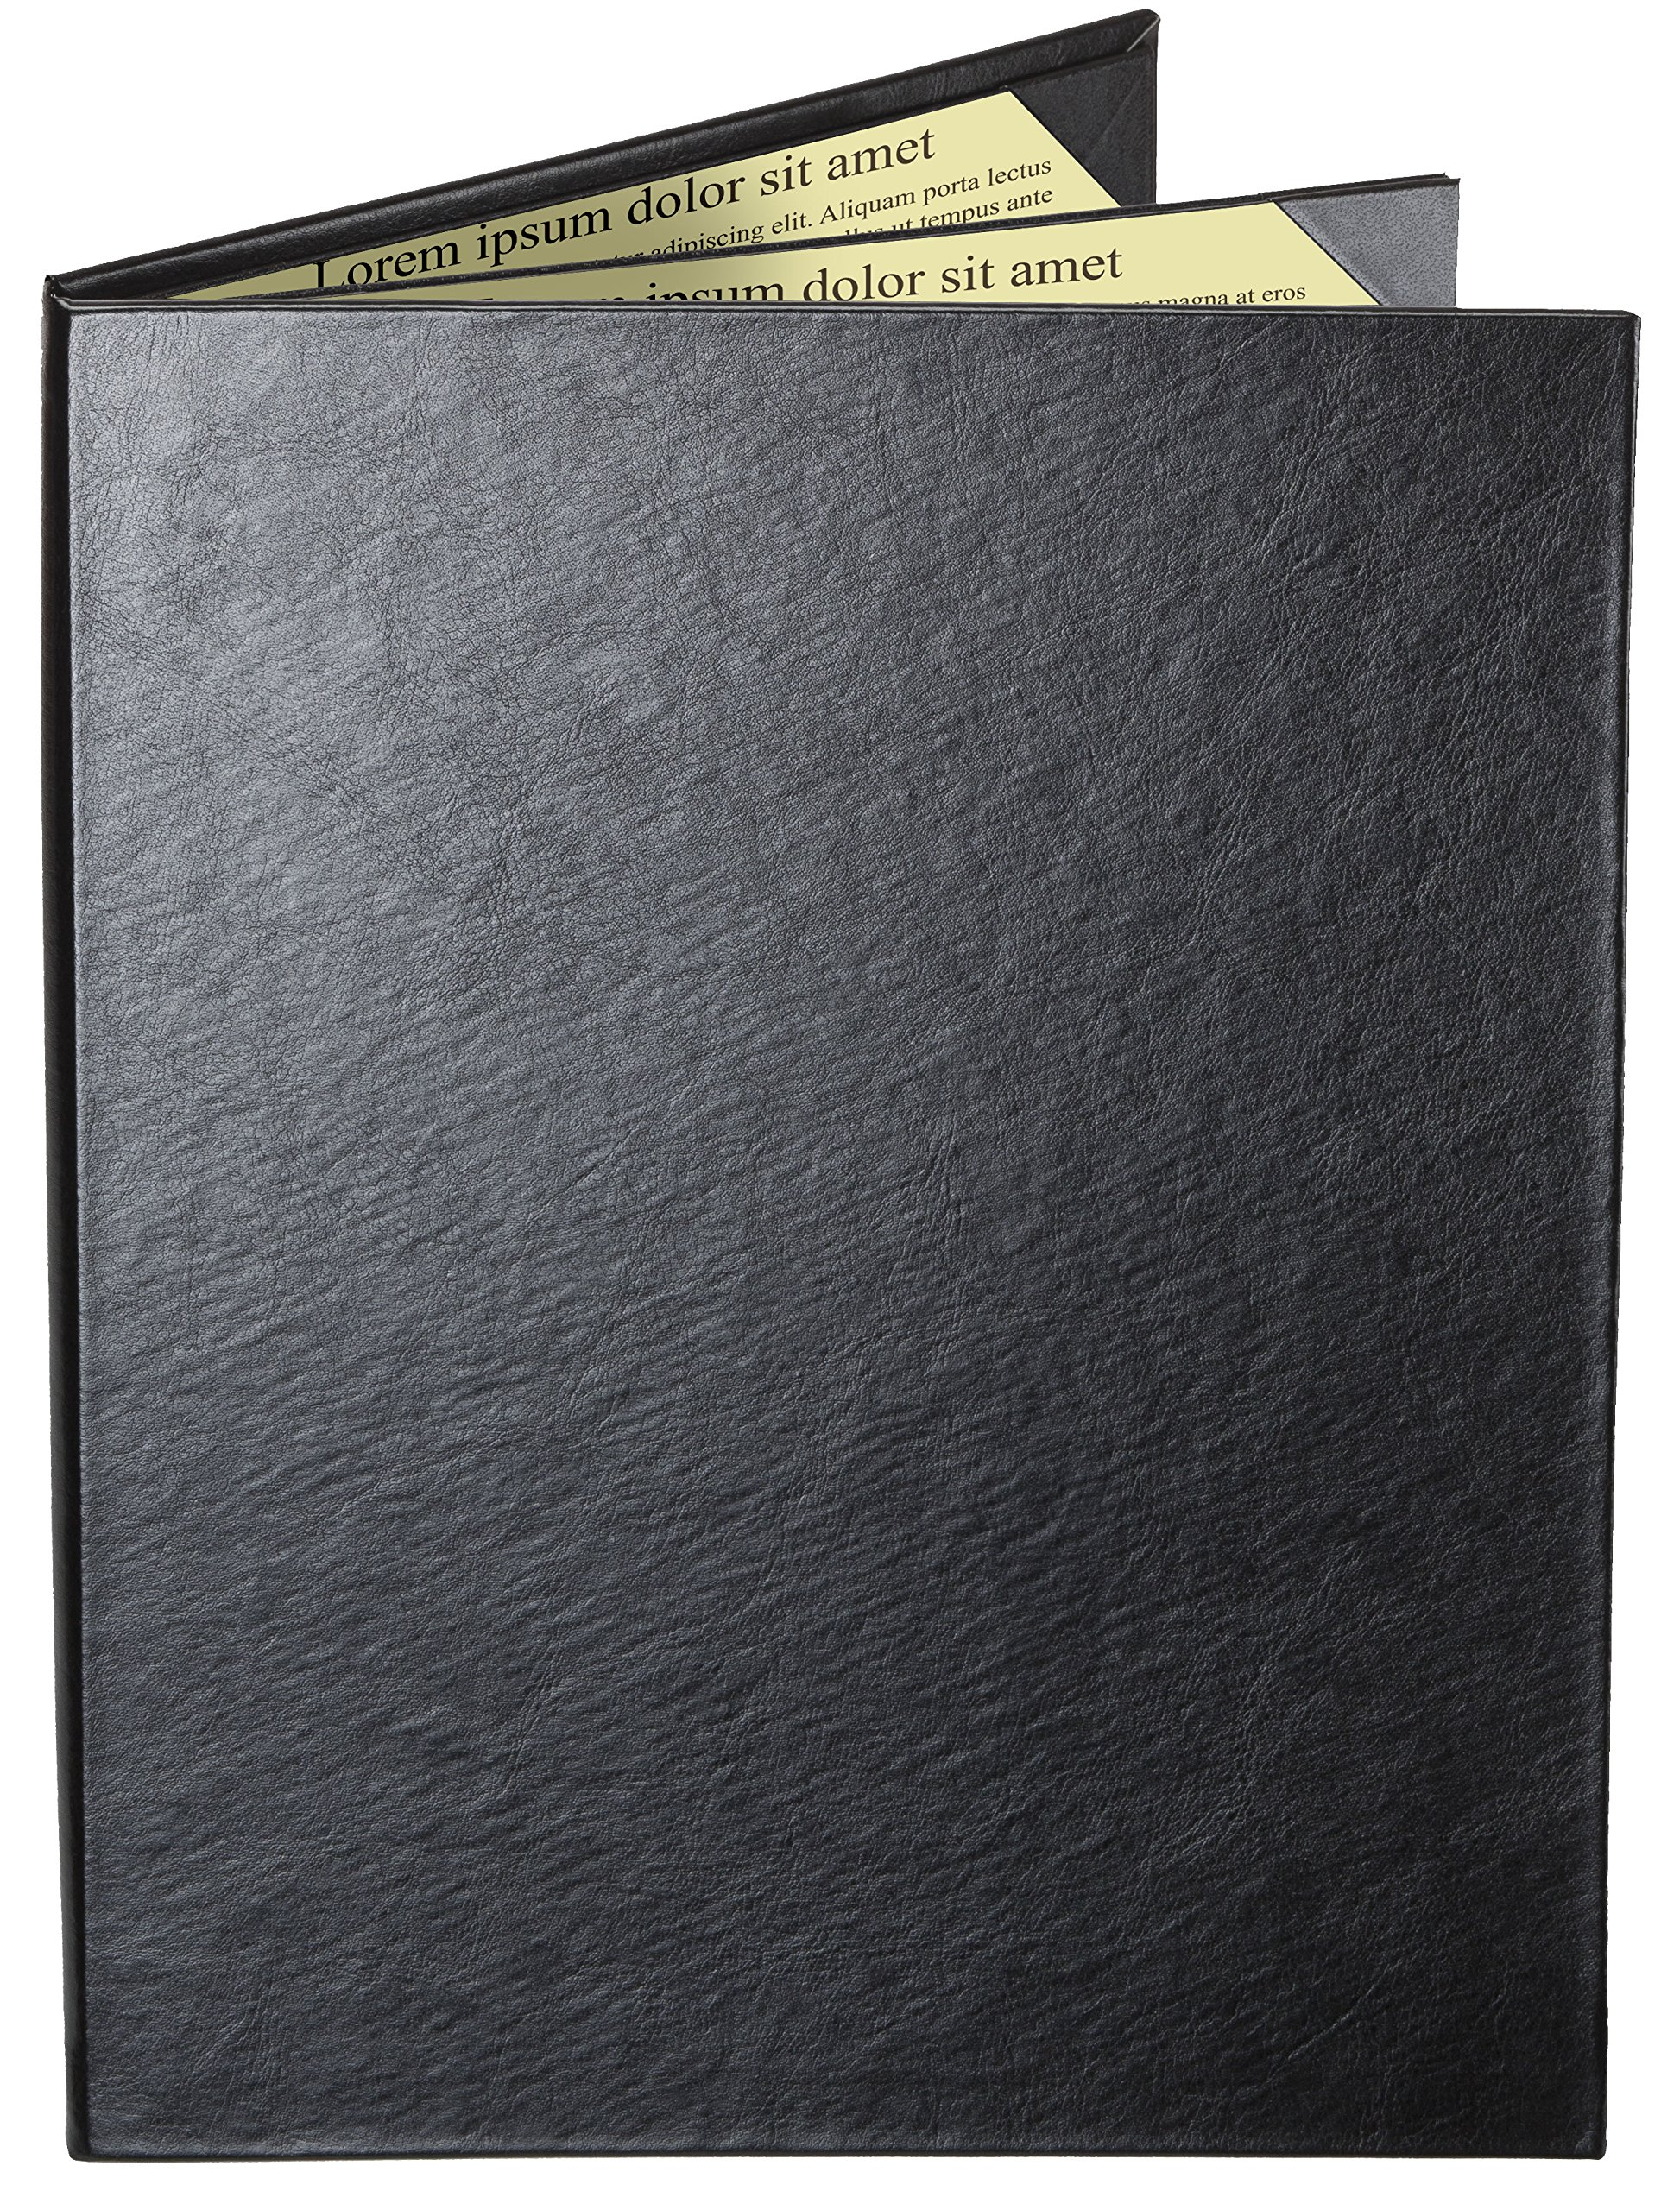 Case of 5 Cascade Casebound Menu Covers #8039 BLACK TRIPLE PANEL - 4-VIEW - 8.5'' WIDE x 11'' TALL - WATERFALL EDGE. Interior album-style corners. SEE MORE - Type MenuCoverMan in Amazon search.